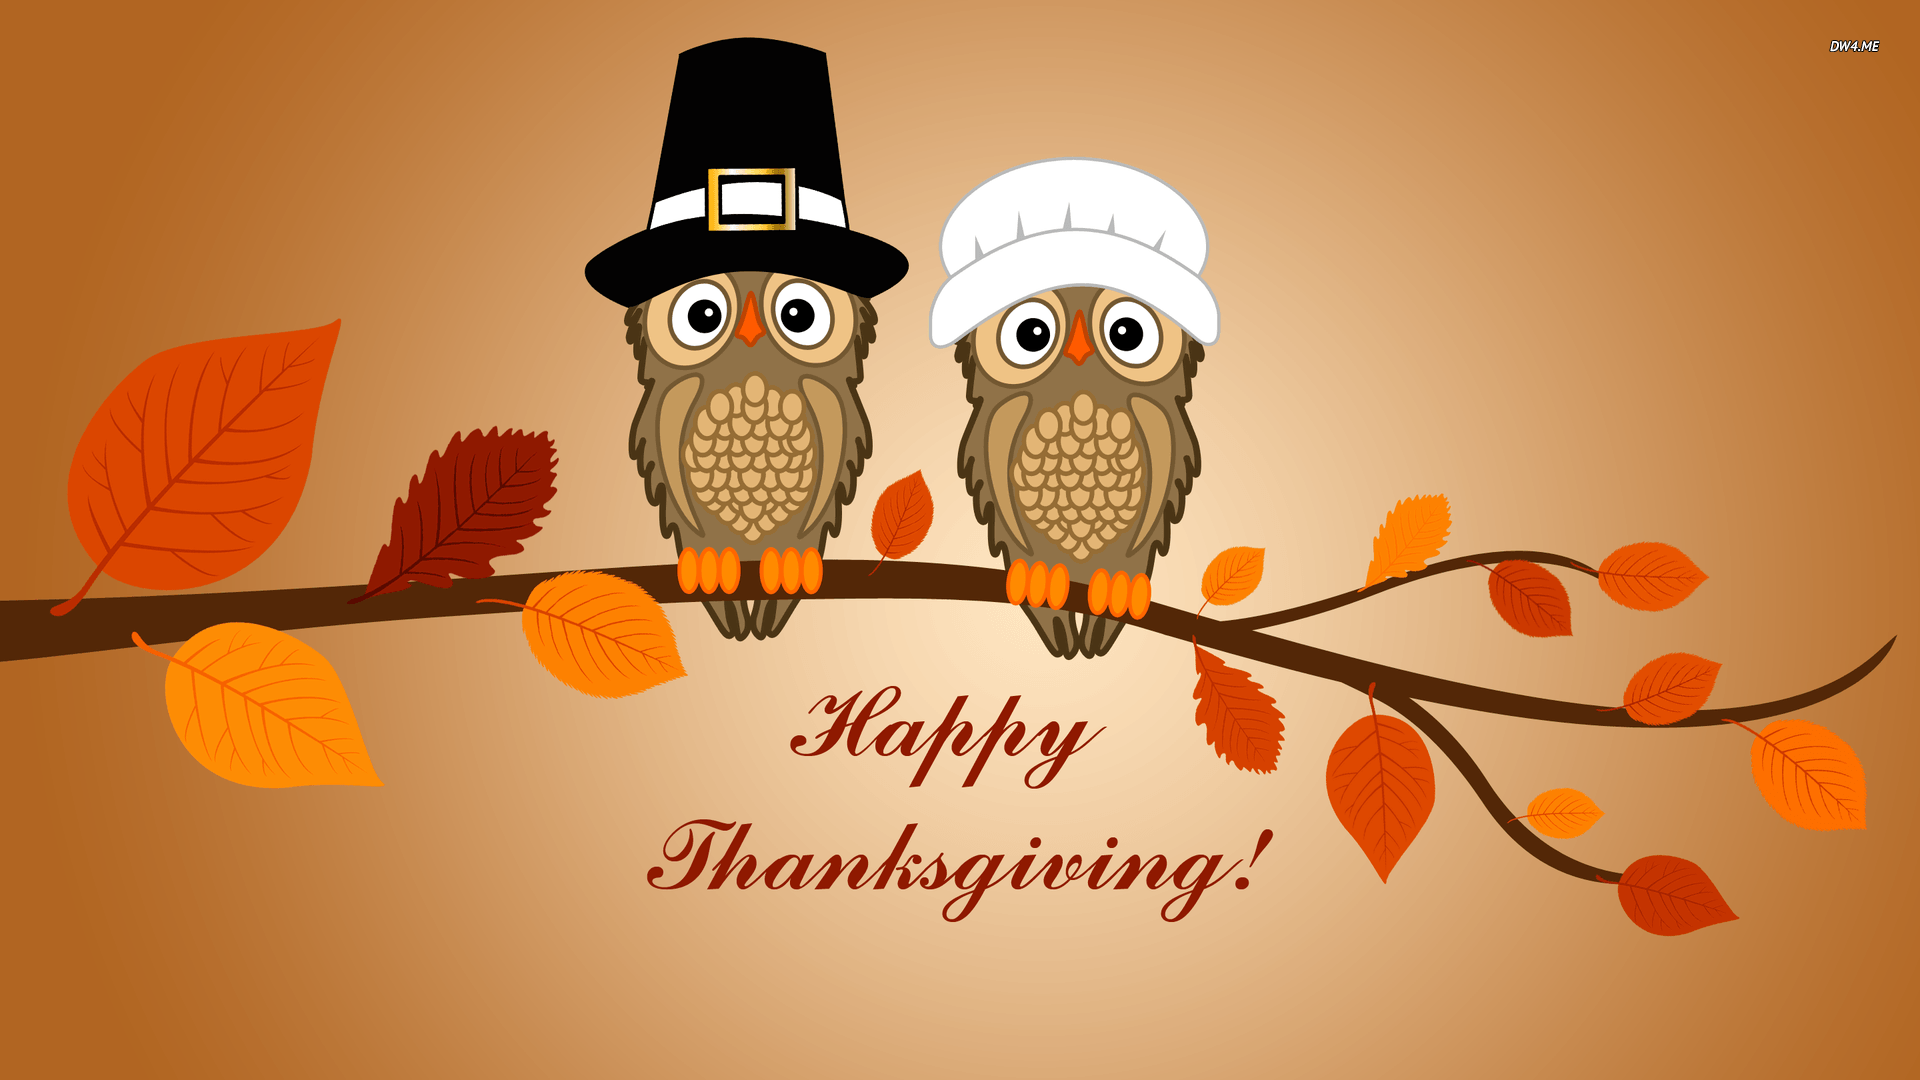 Thanksgiving Wallpapers & Backgrounds